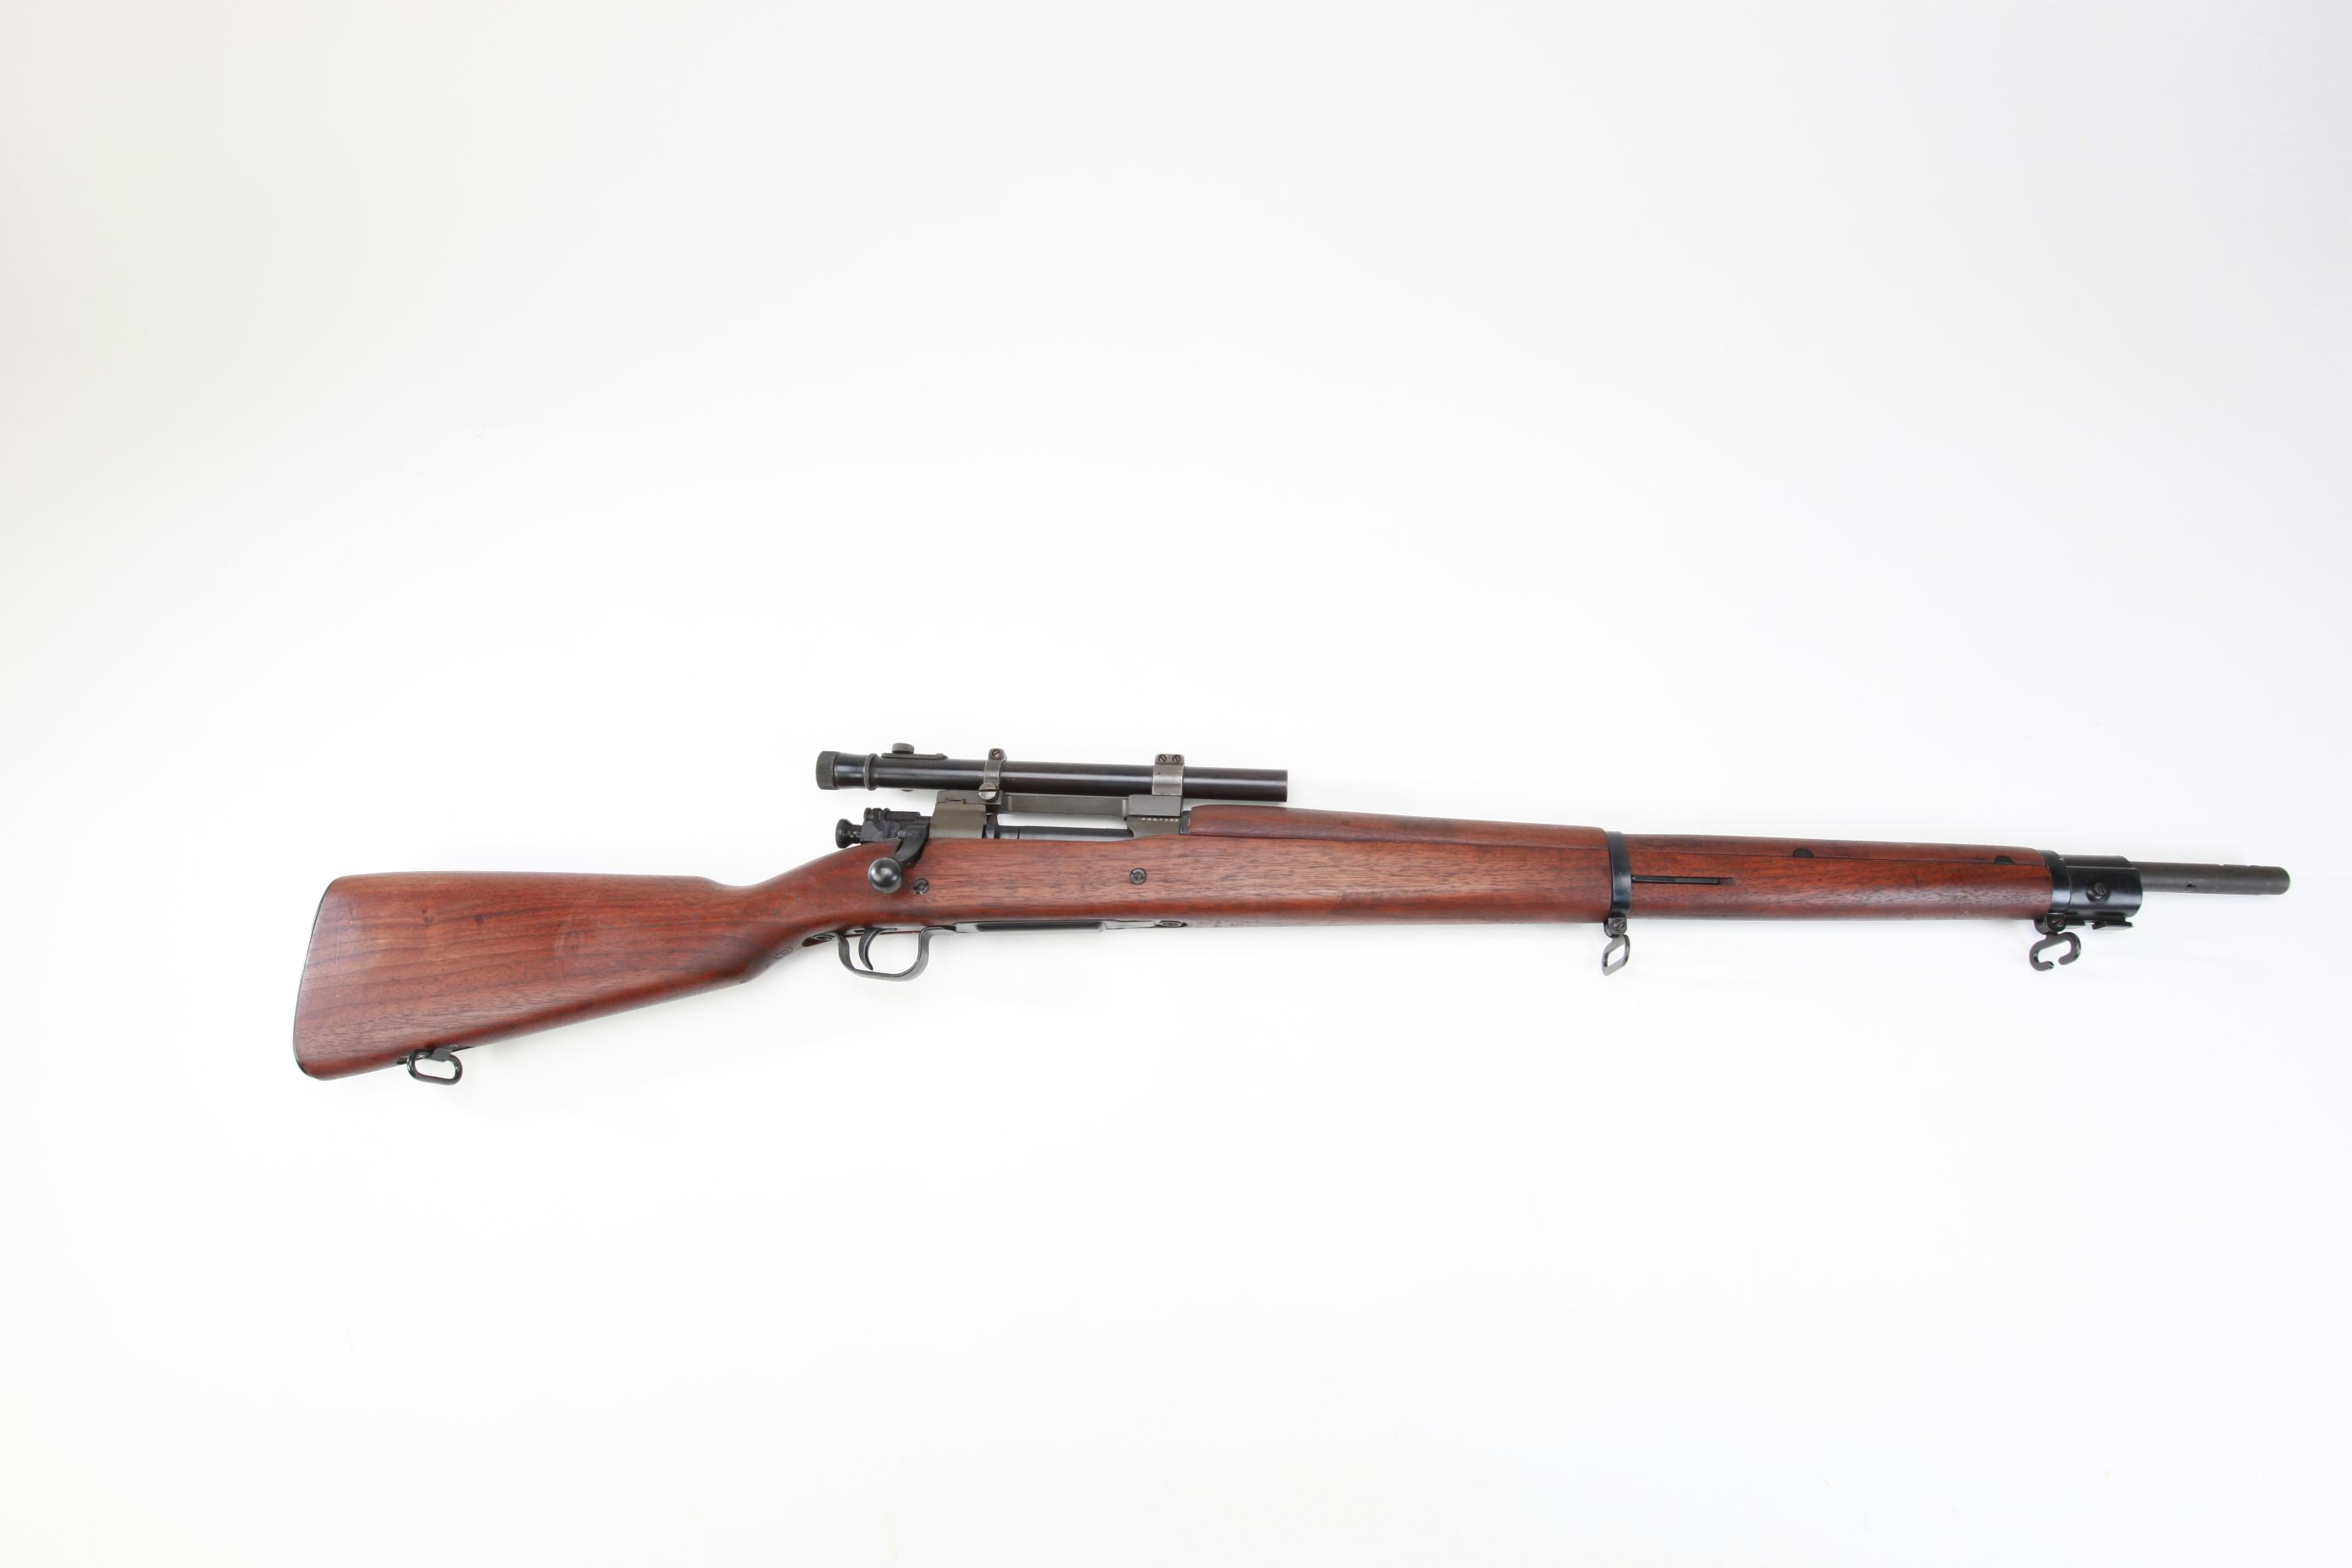 U.S. Remington Model 1903A4 Bolt Action Rifle with telescopic sight